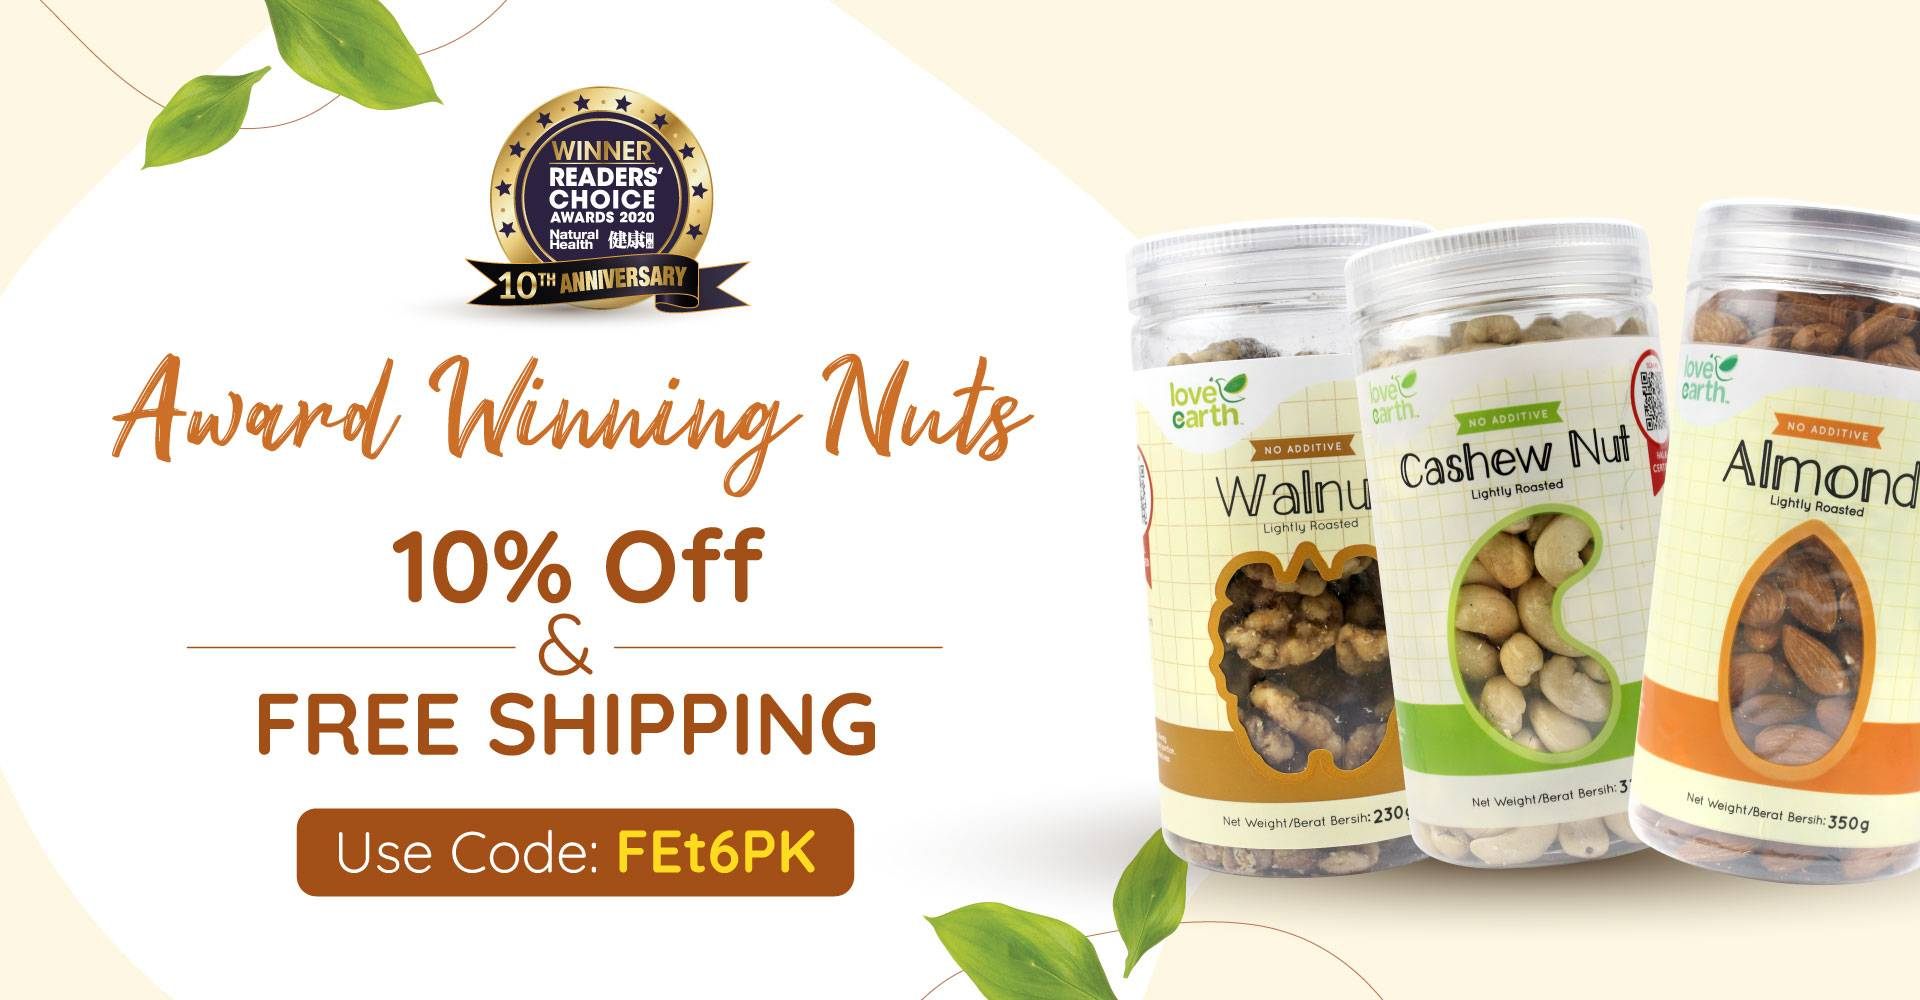 Award Wining Roasted Nut 10% Off + Free Shipping